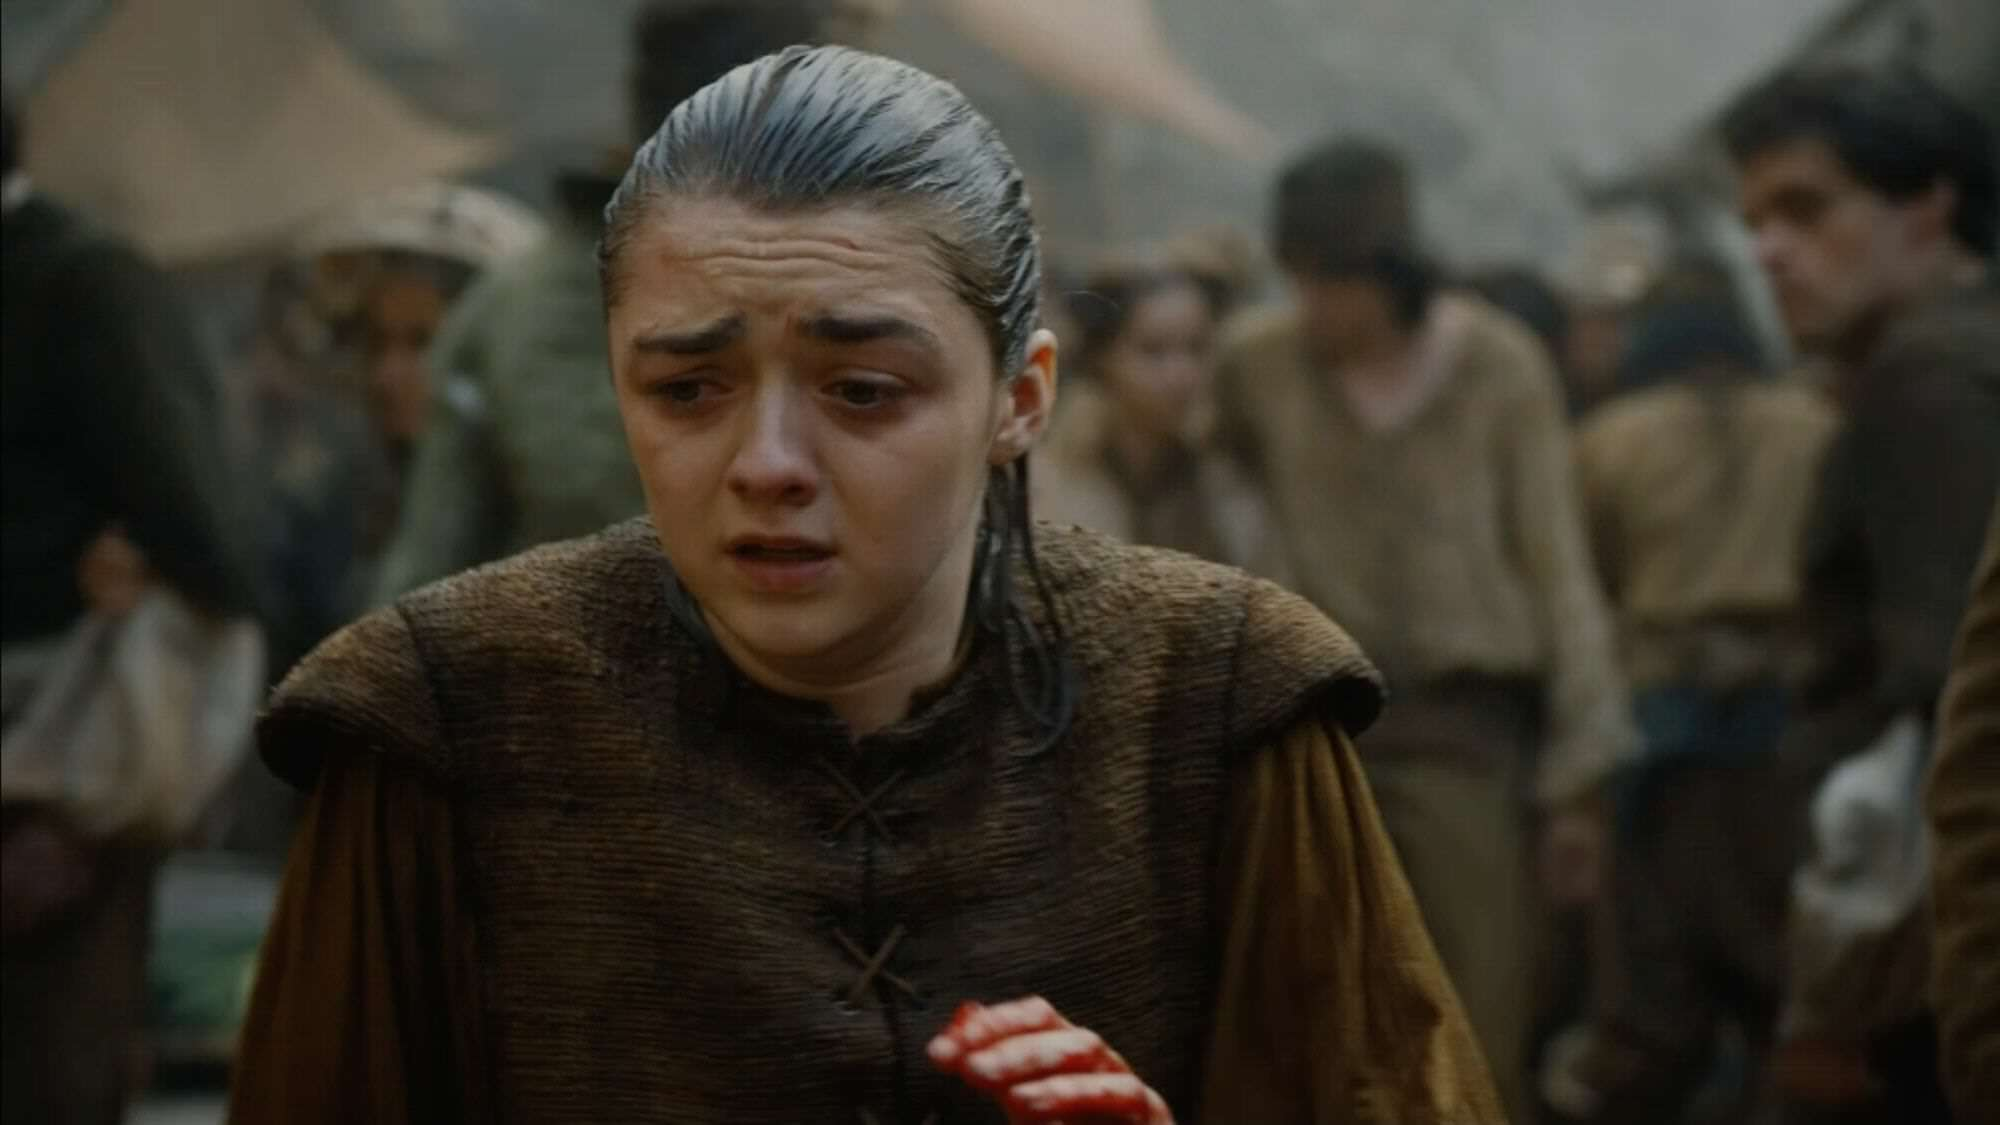 Theres Yet Another Theory About That Game Of Thrones Arya Scene got 1